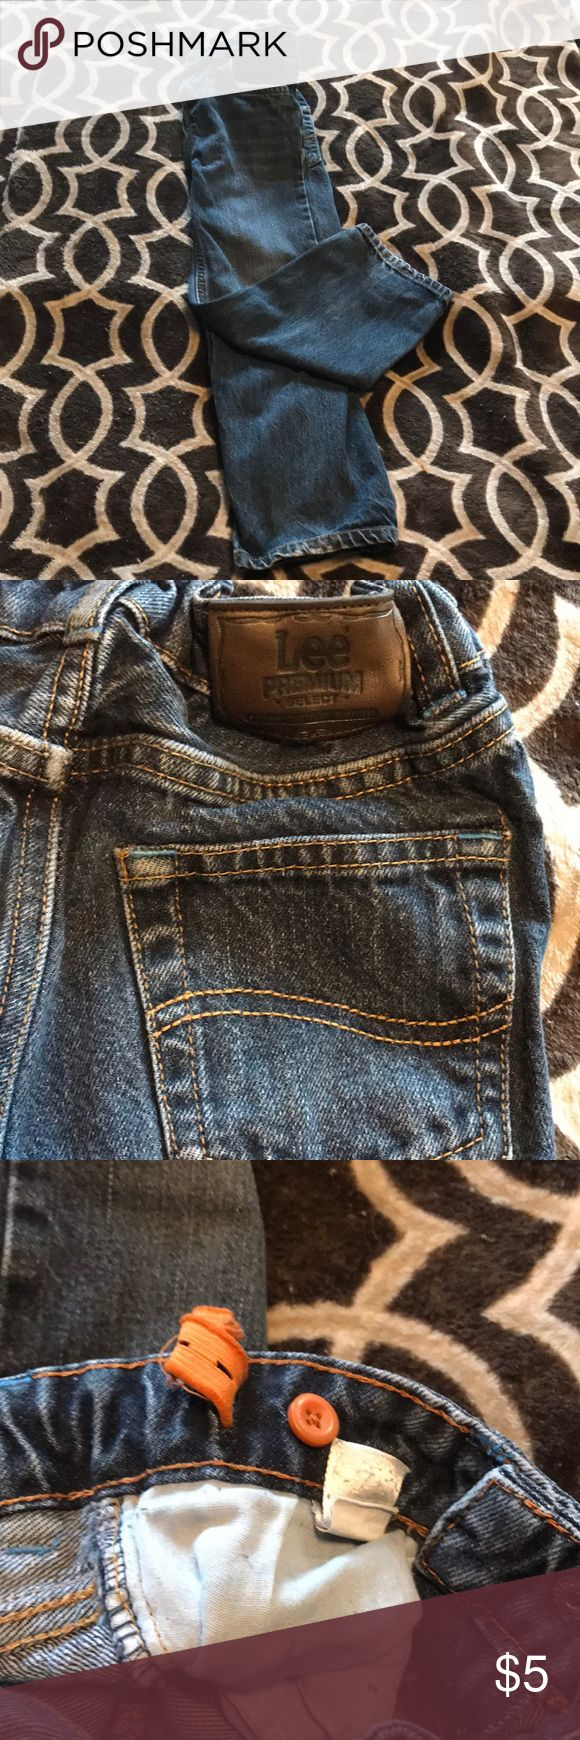 Boys Lee Jeans Boys Lee Jeans. Size 5. Adjustable waistband. Lee Bottoms Jeans